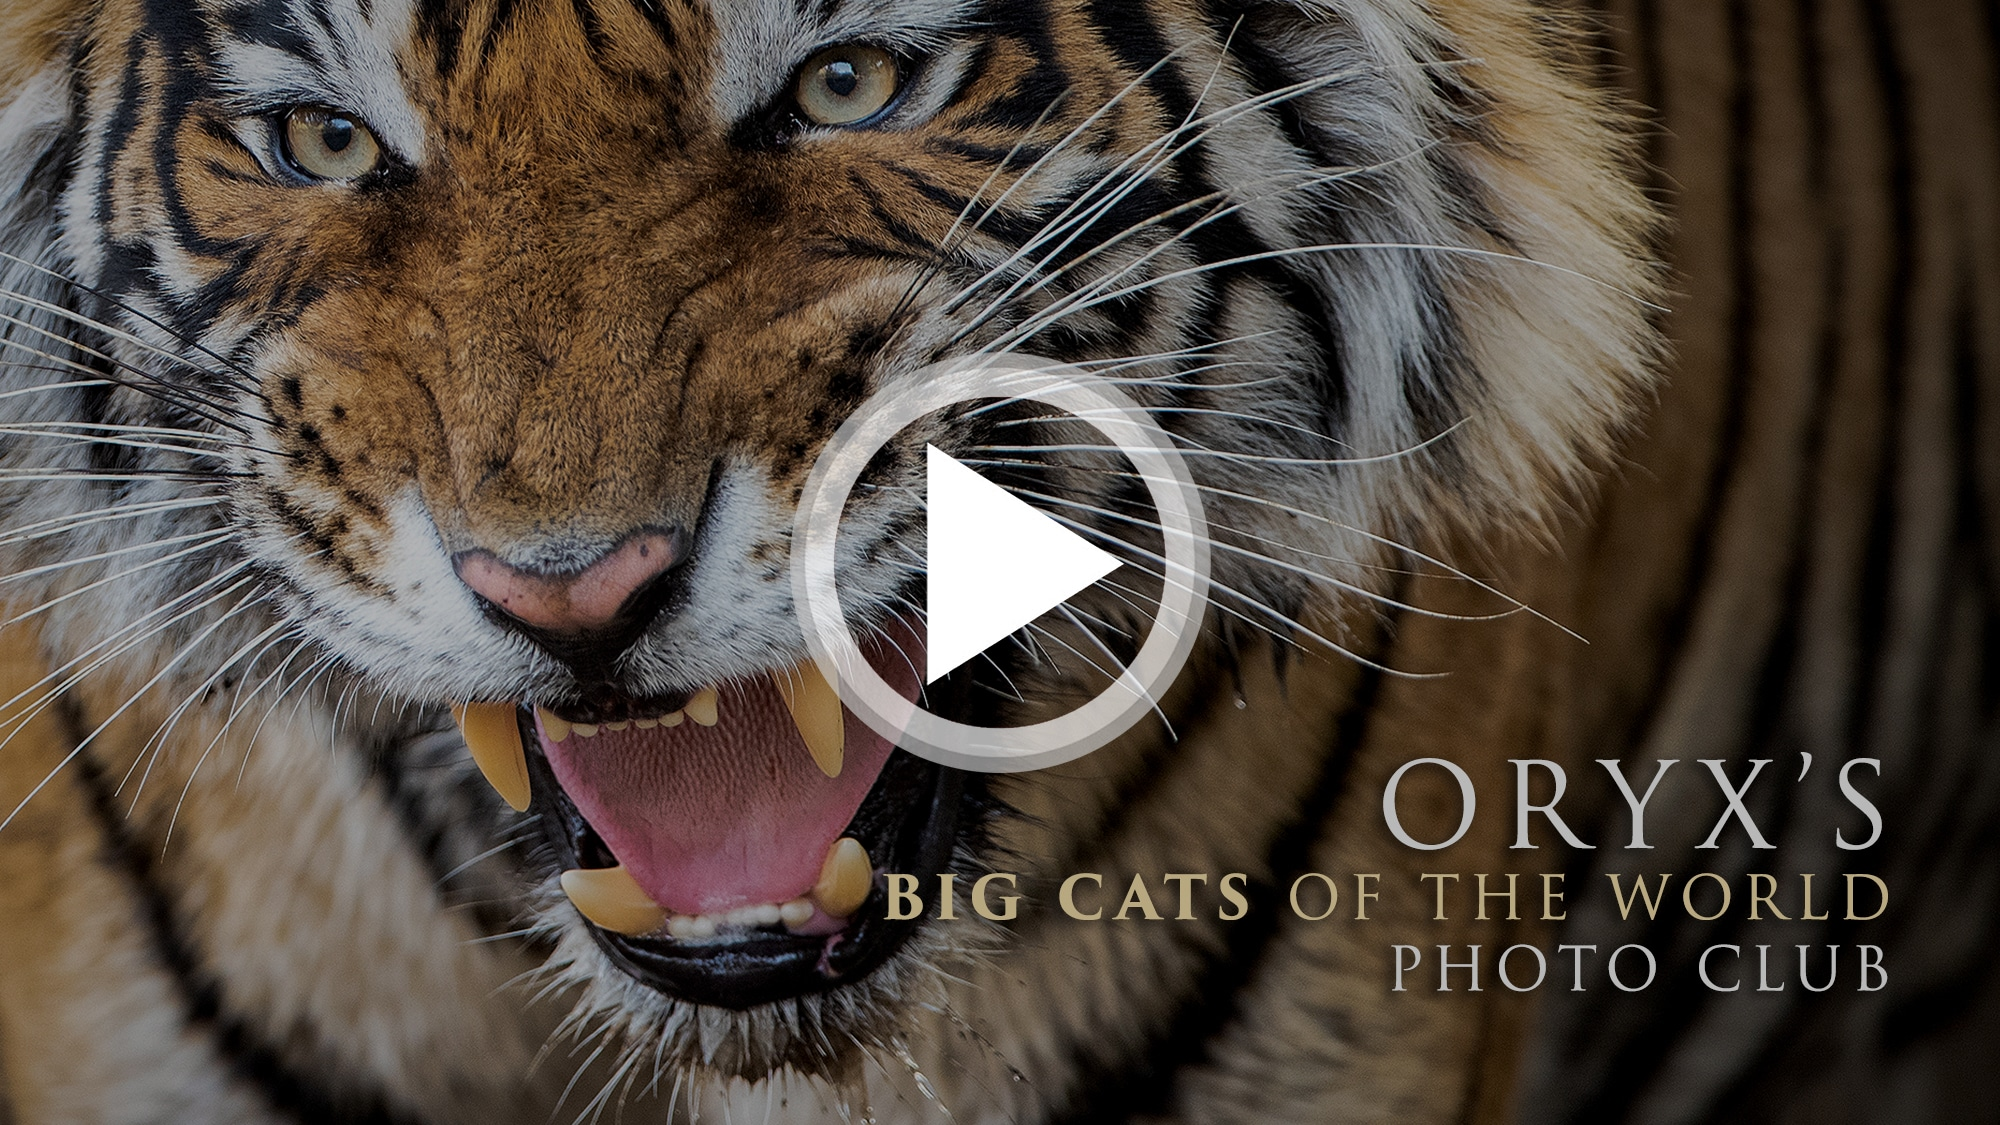 ORYX's Big Cats of the World video